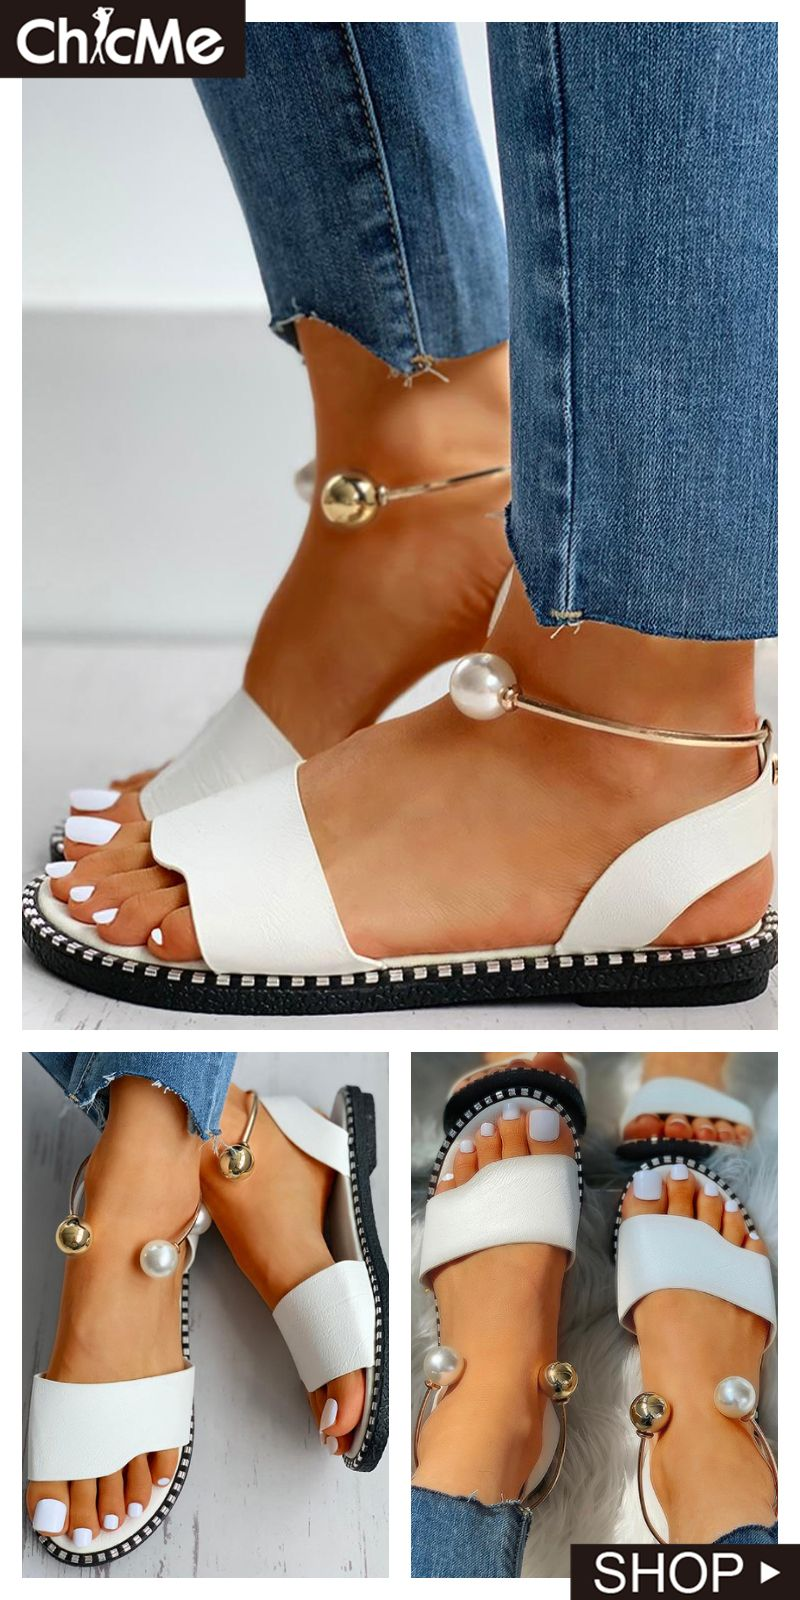 Beaded ankle ring slingback flat sandals in 2020 chic